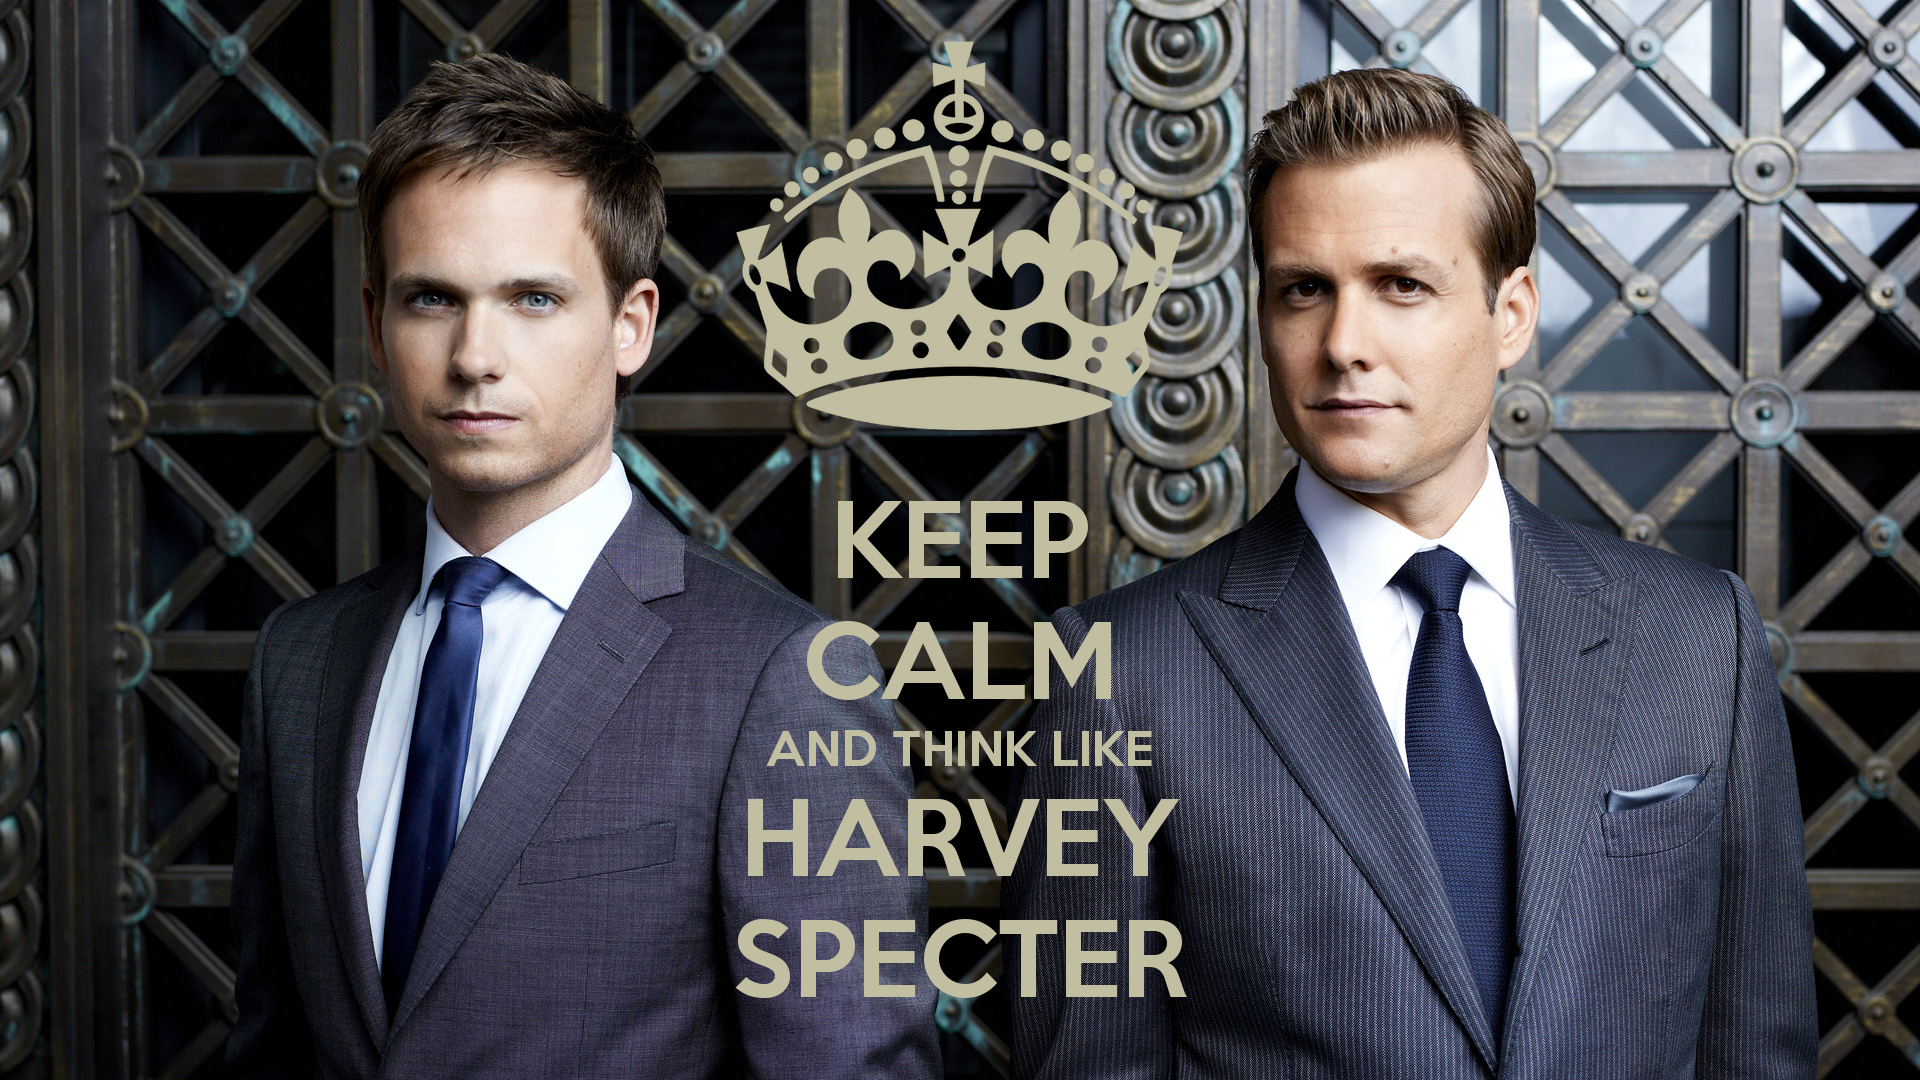 ♔ KEEP CALM AND THINK LIKE HARVEY SPECTER #SUITS | QUOTES: SUITS